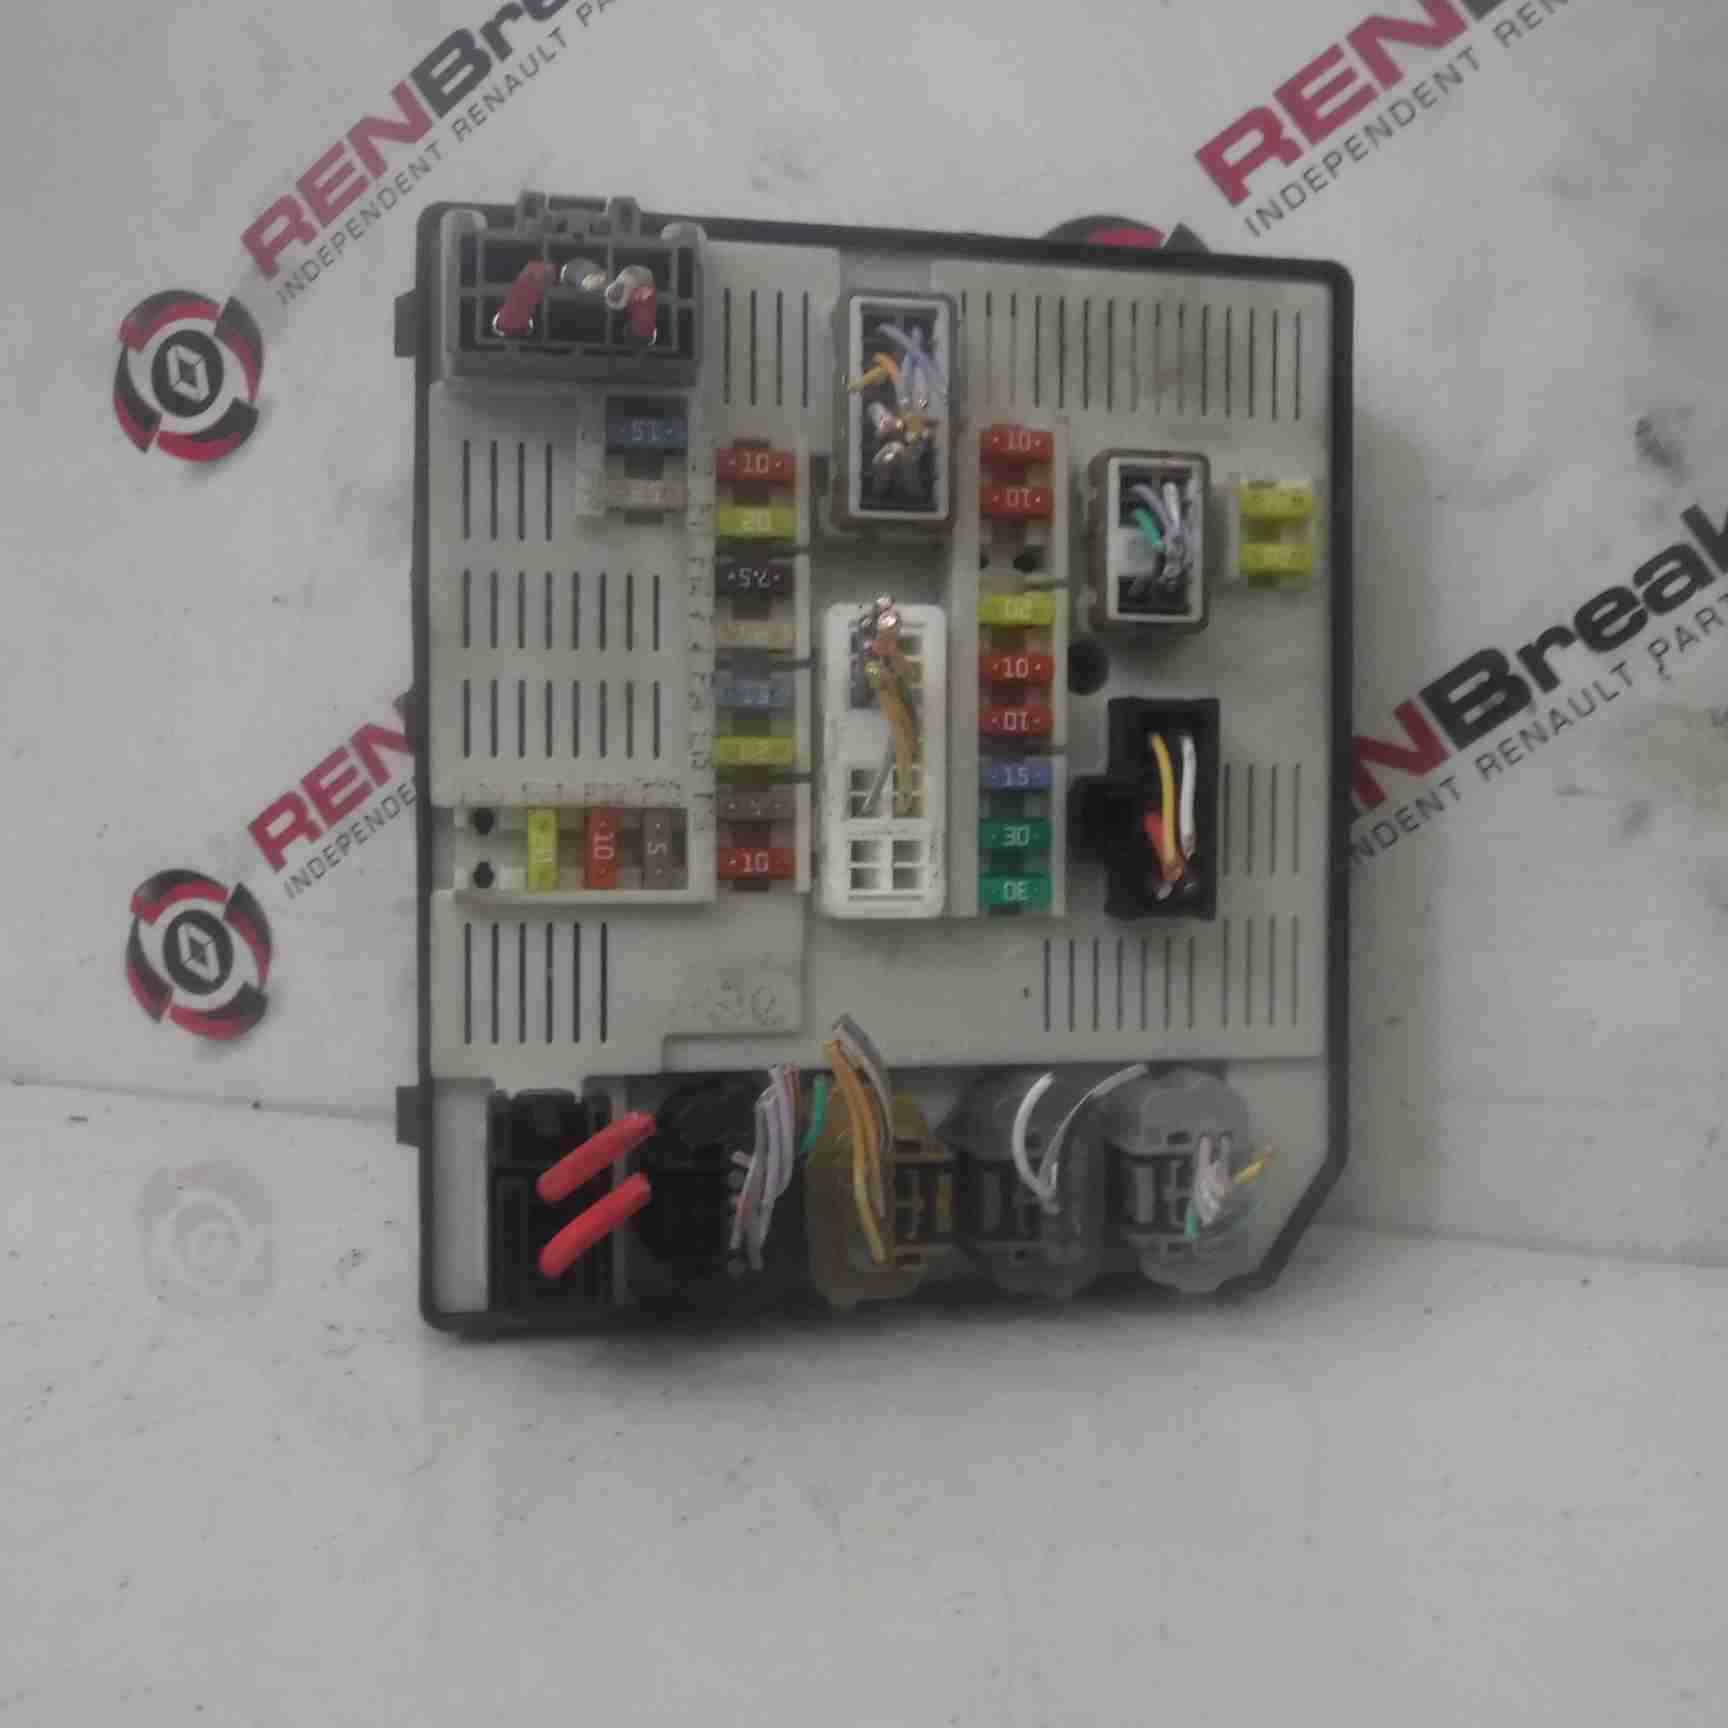 hight resolution of details about renault megane mk3 2008 2012 under bonnet fuse box 284b60009r